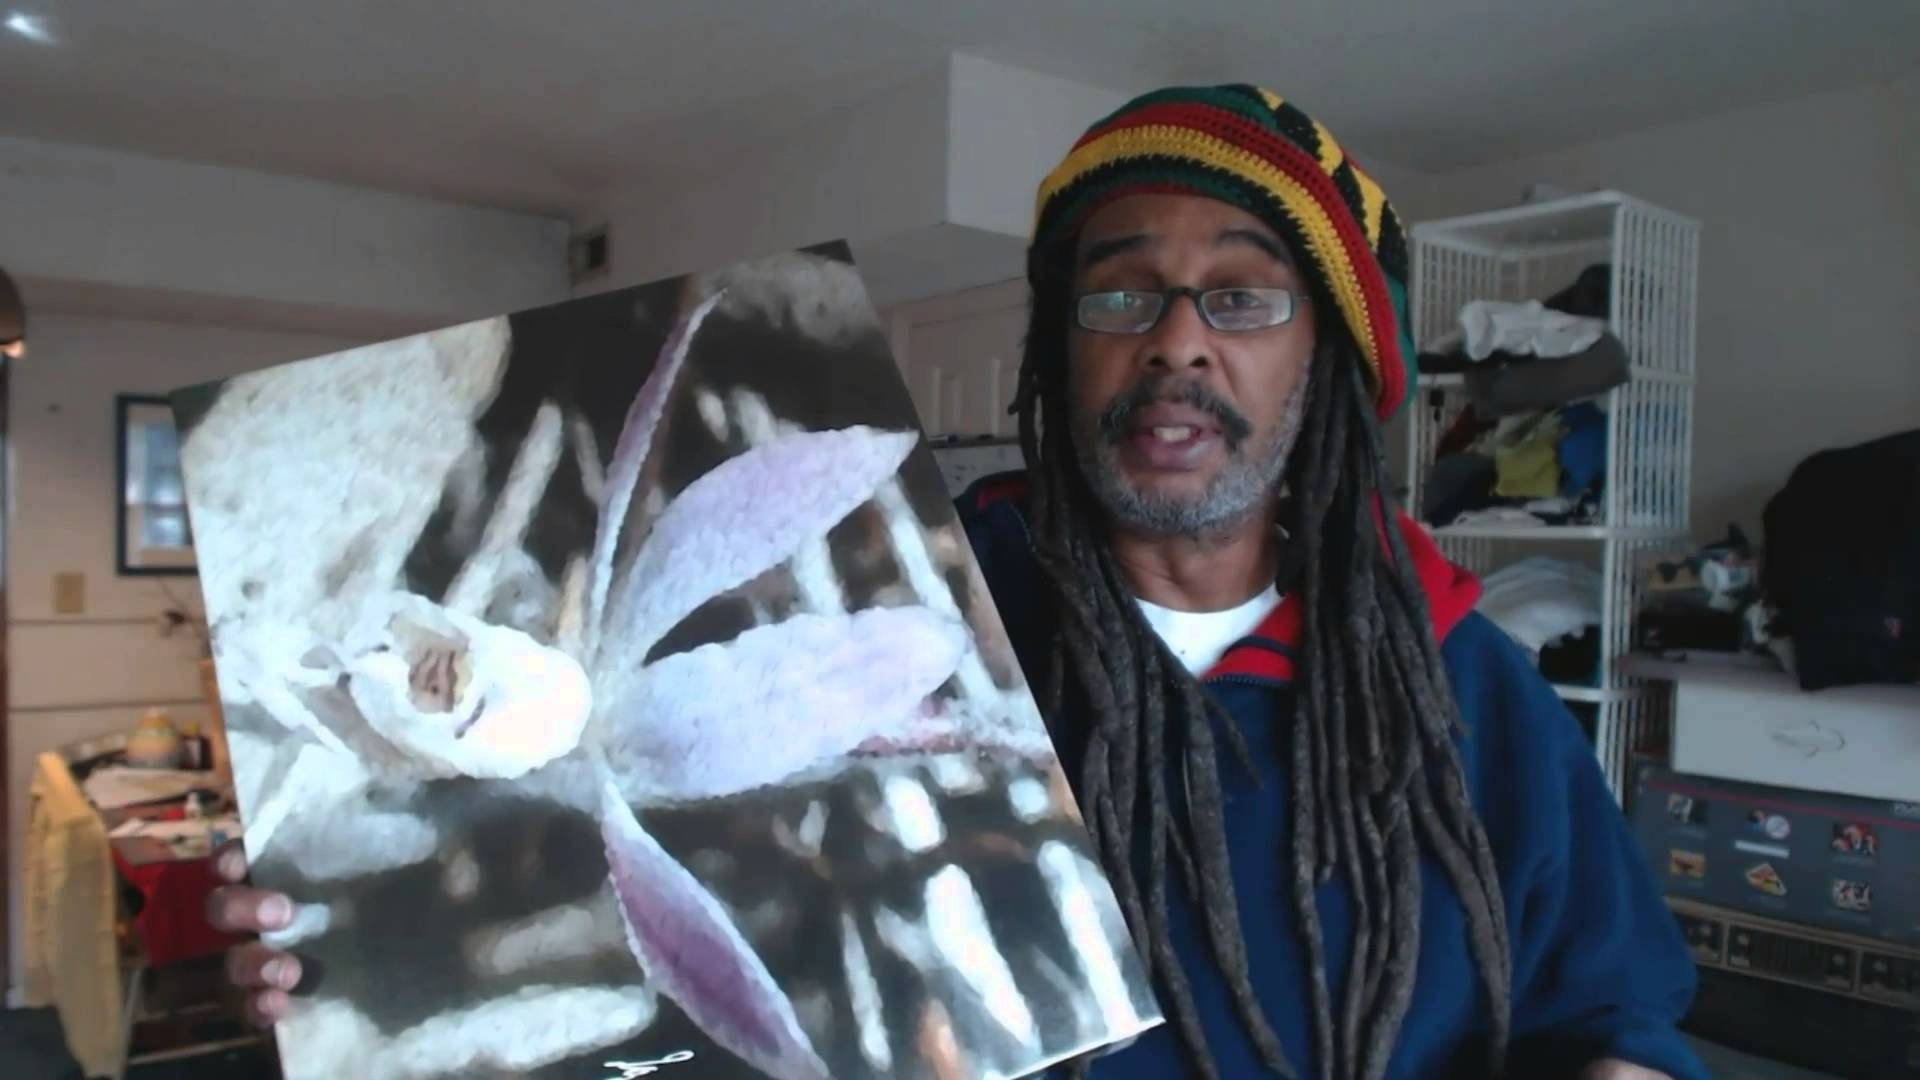 Canvas Wall Art At Walmart With Regard To Widely Used Picasso Goes To Walmart Unboxing Canvas And Wall Art – Youtube (Gallery 10 of 15)